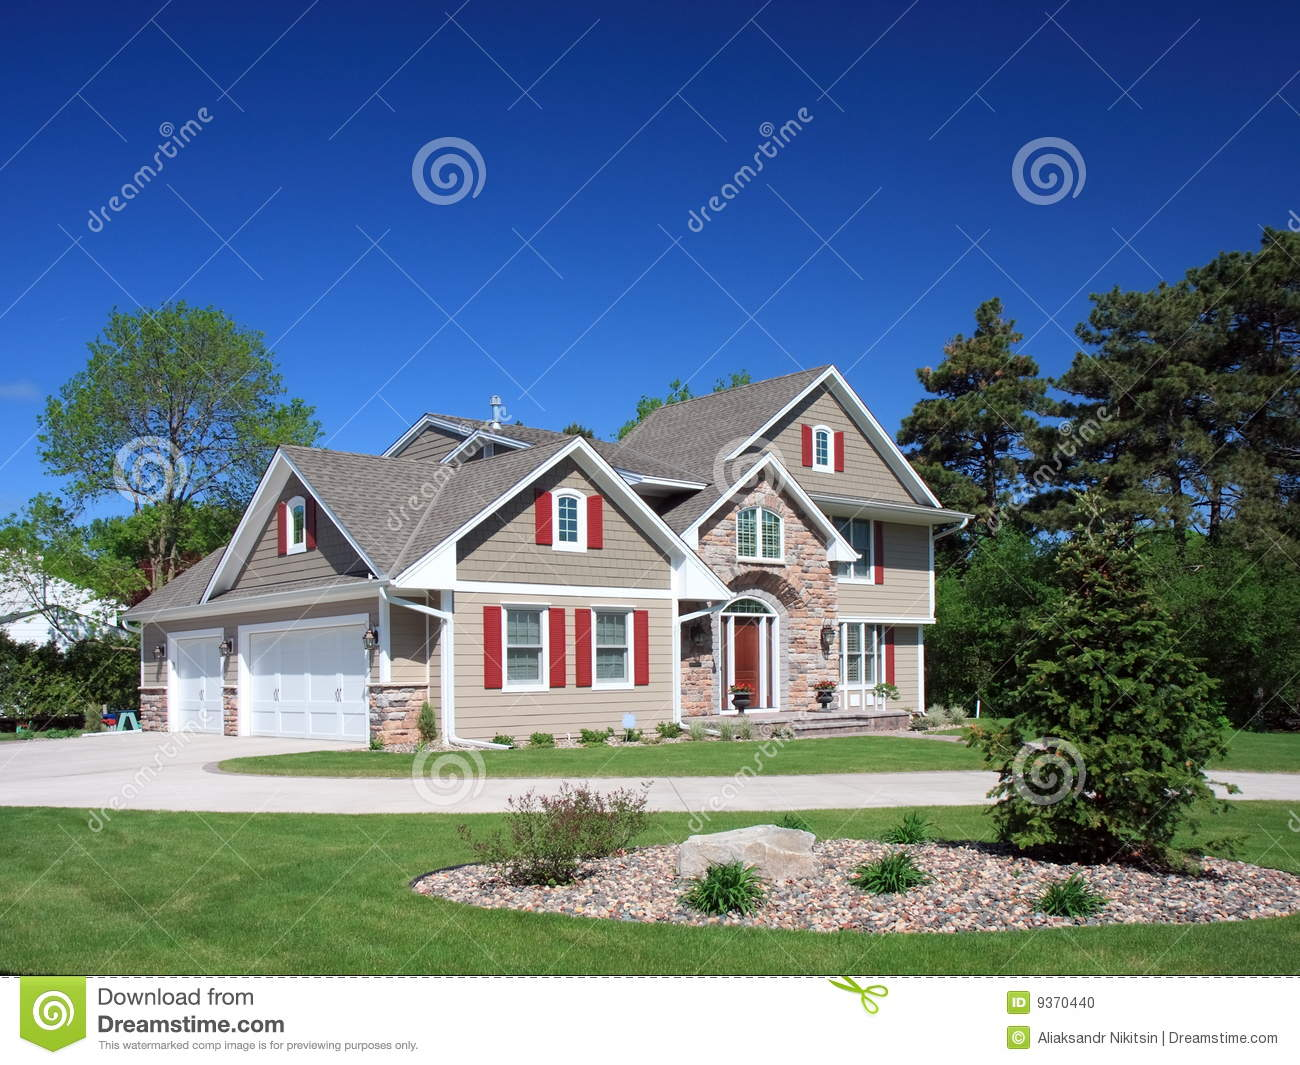 Residential House In Minneapolis Stock Photo Image 9370440